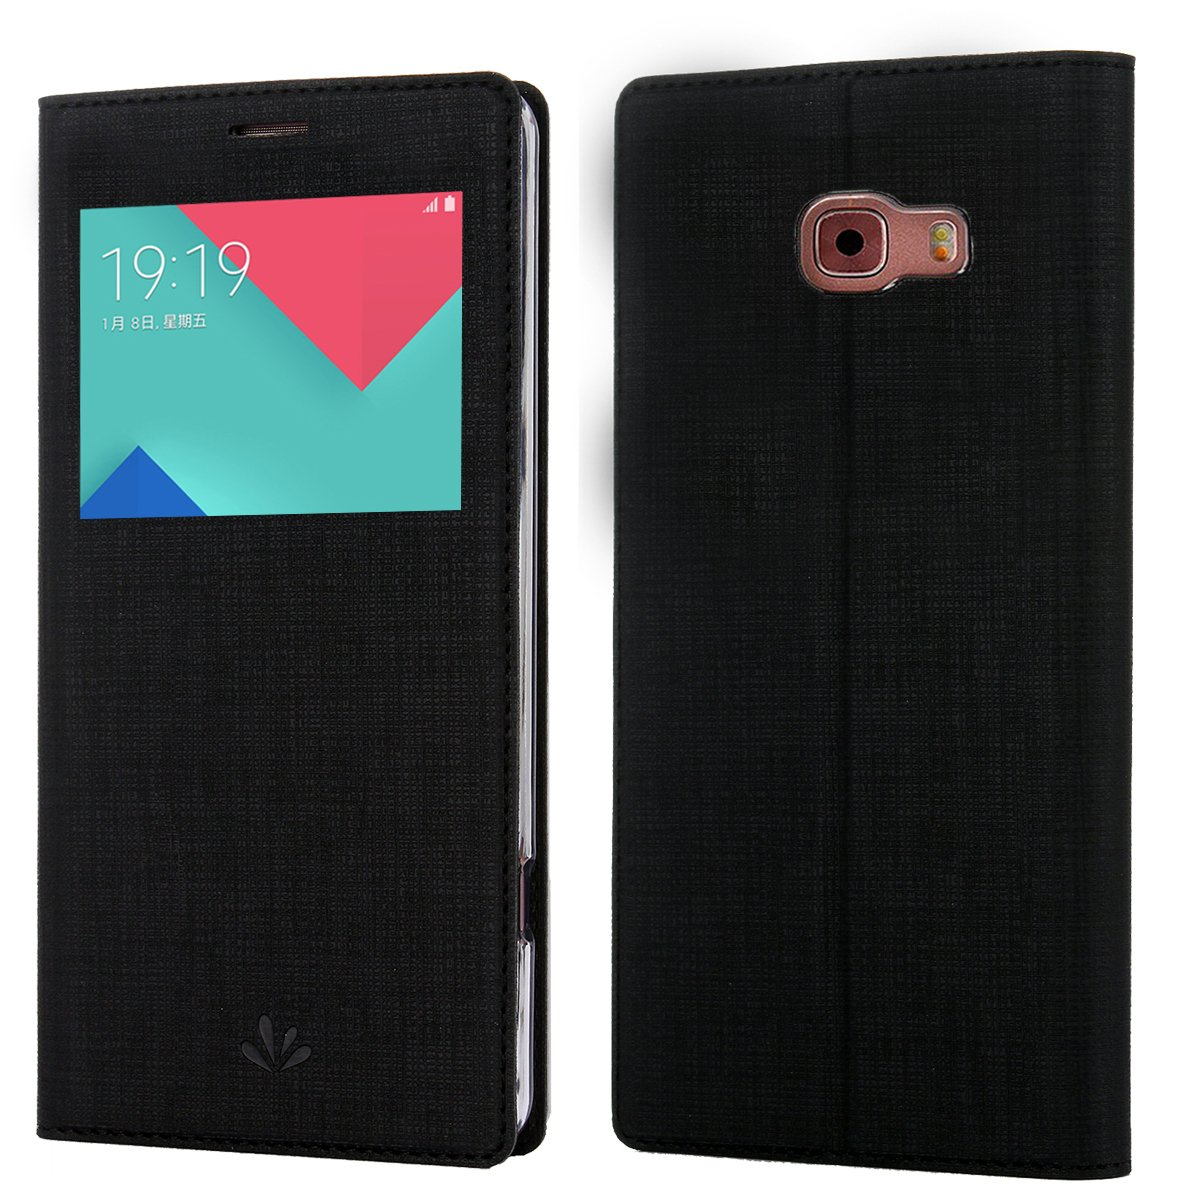 the best attitude bc667 f364a Samsung Galaxy A7(2016)/A710F Case, Premium Leather PU Flip Wallet Case  with View Window Stand Kickstand Card Holder Magnetic Closure TPU bumper  full ...